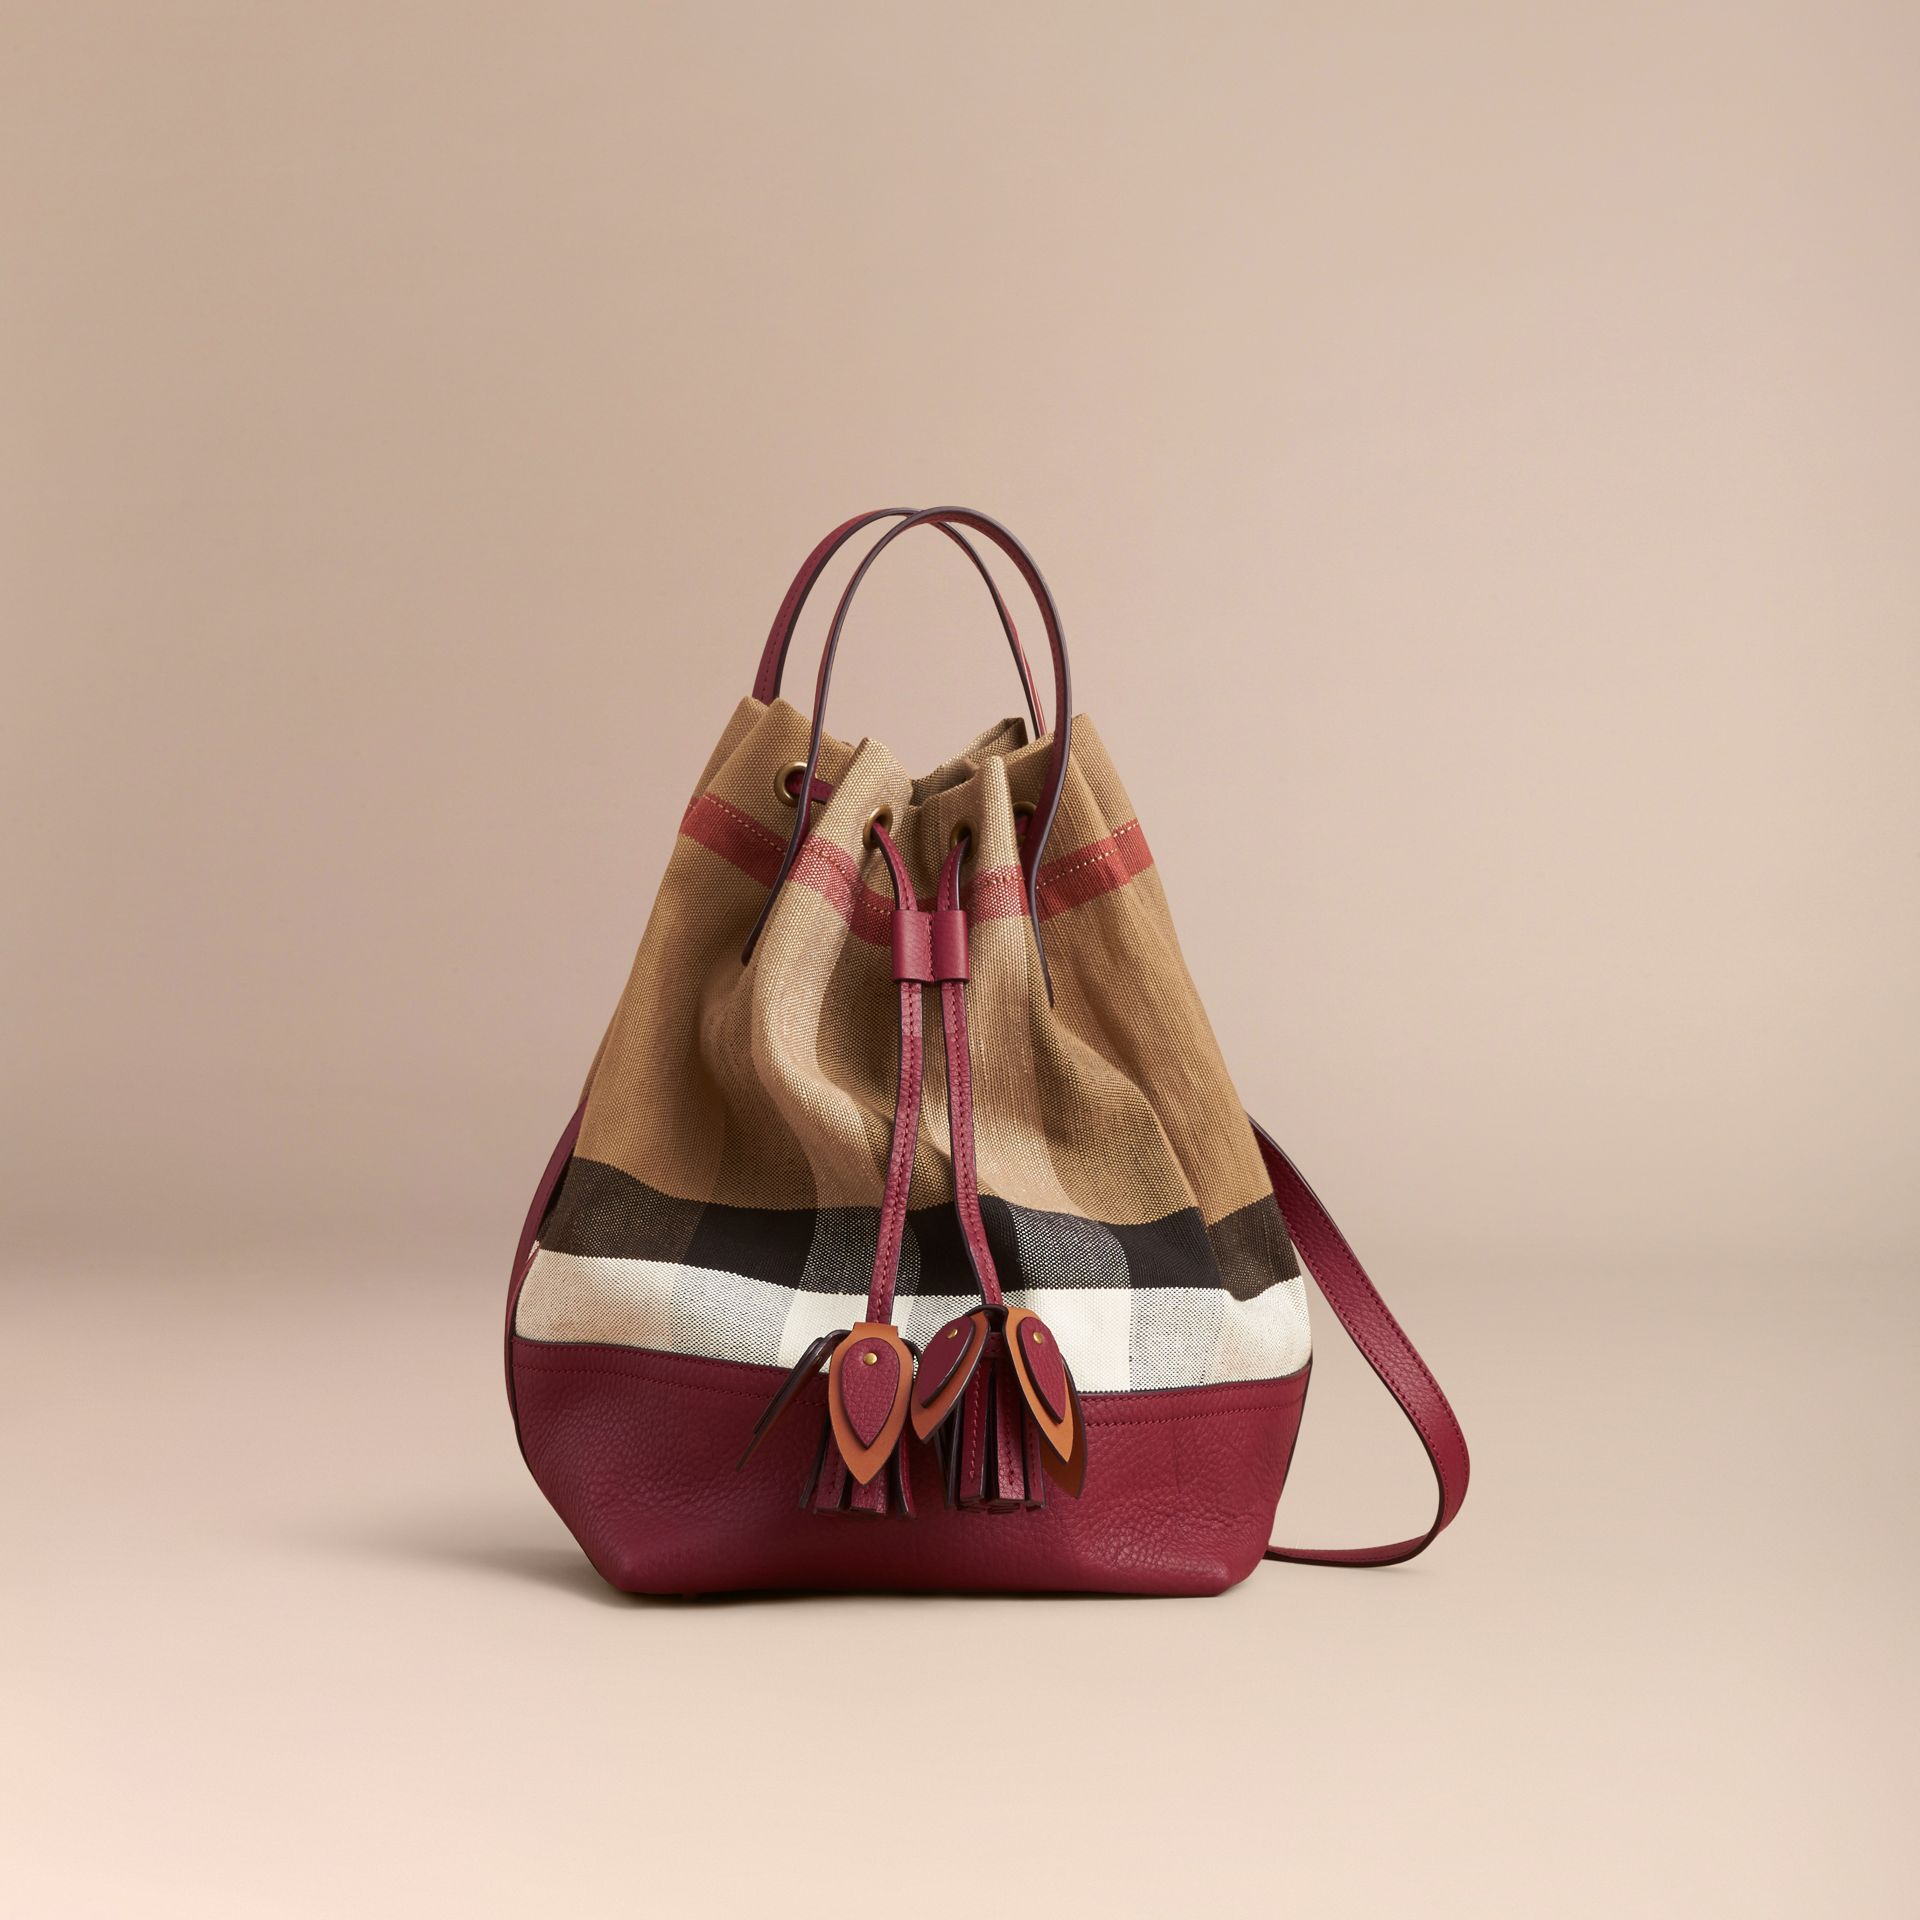 Medium Canvas Check and Leather Bucket Bag in Burgundy Red - Women | Burberry - gallery image 8